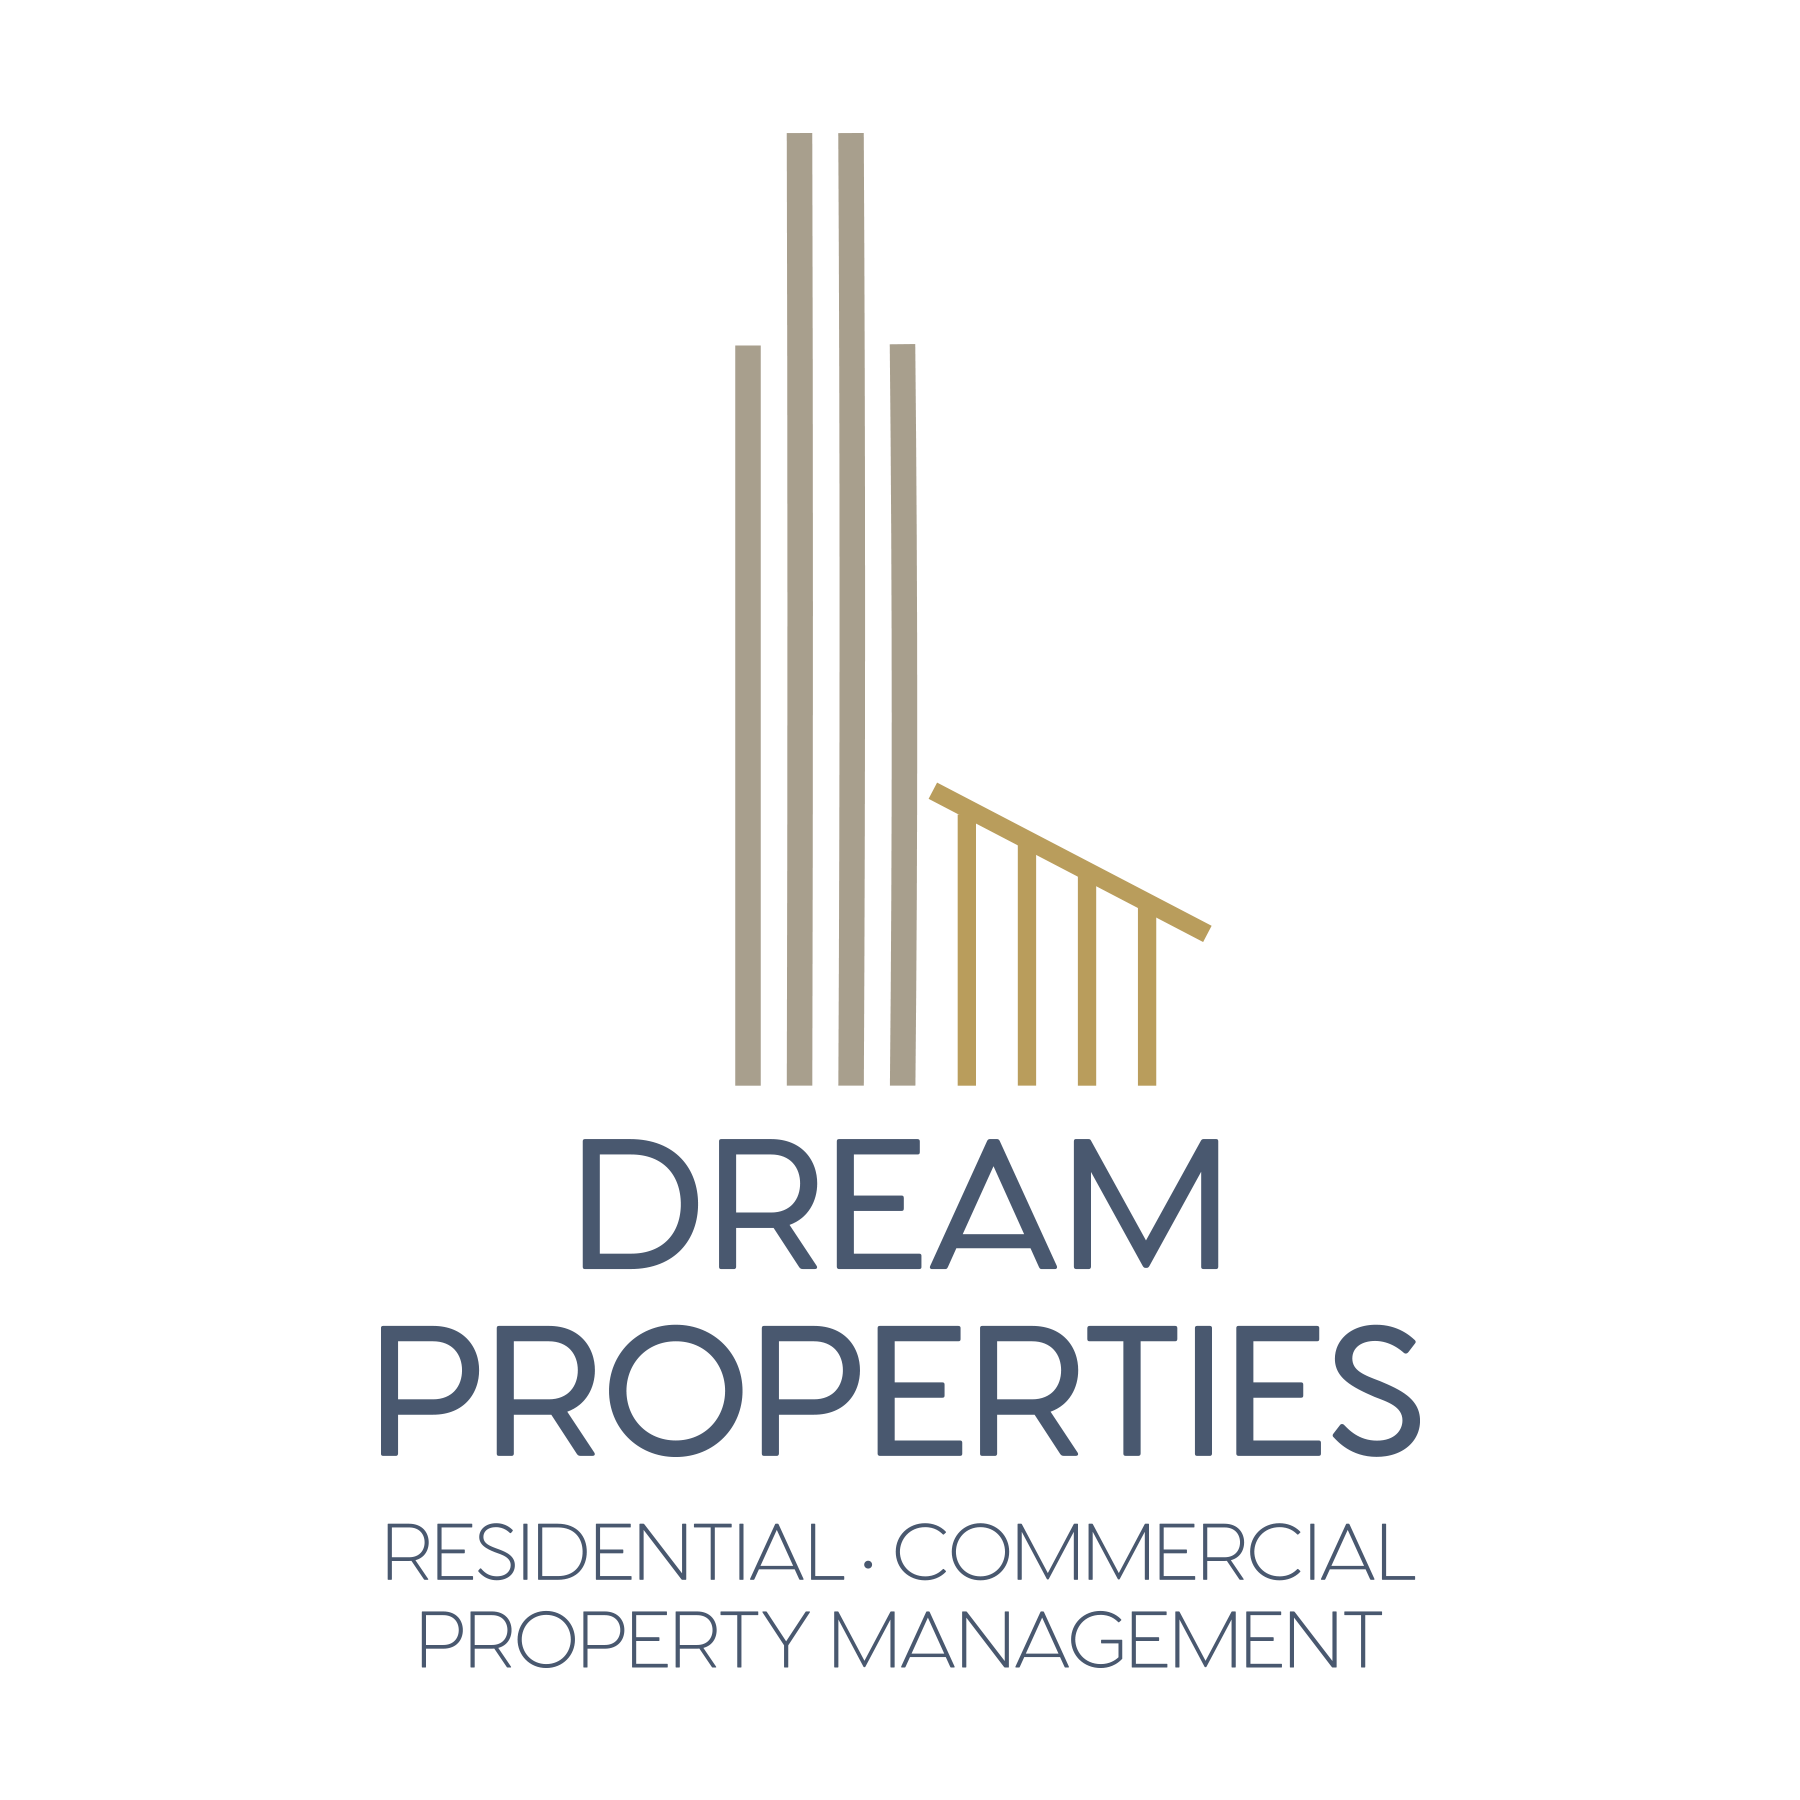 Abby Wai Kwan Yuen – Dream Properties